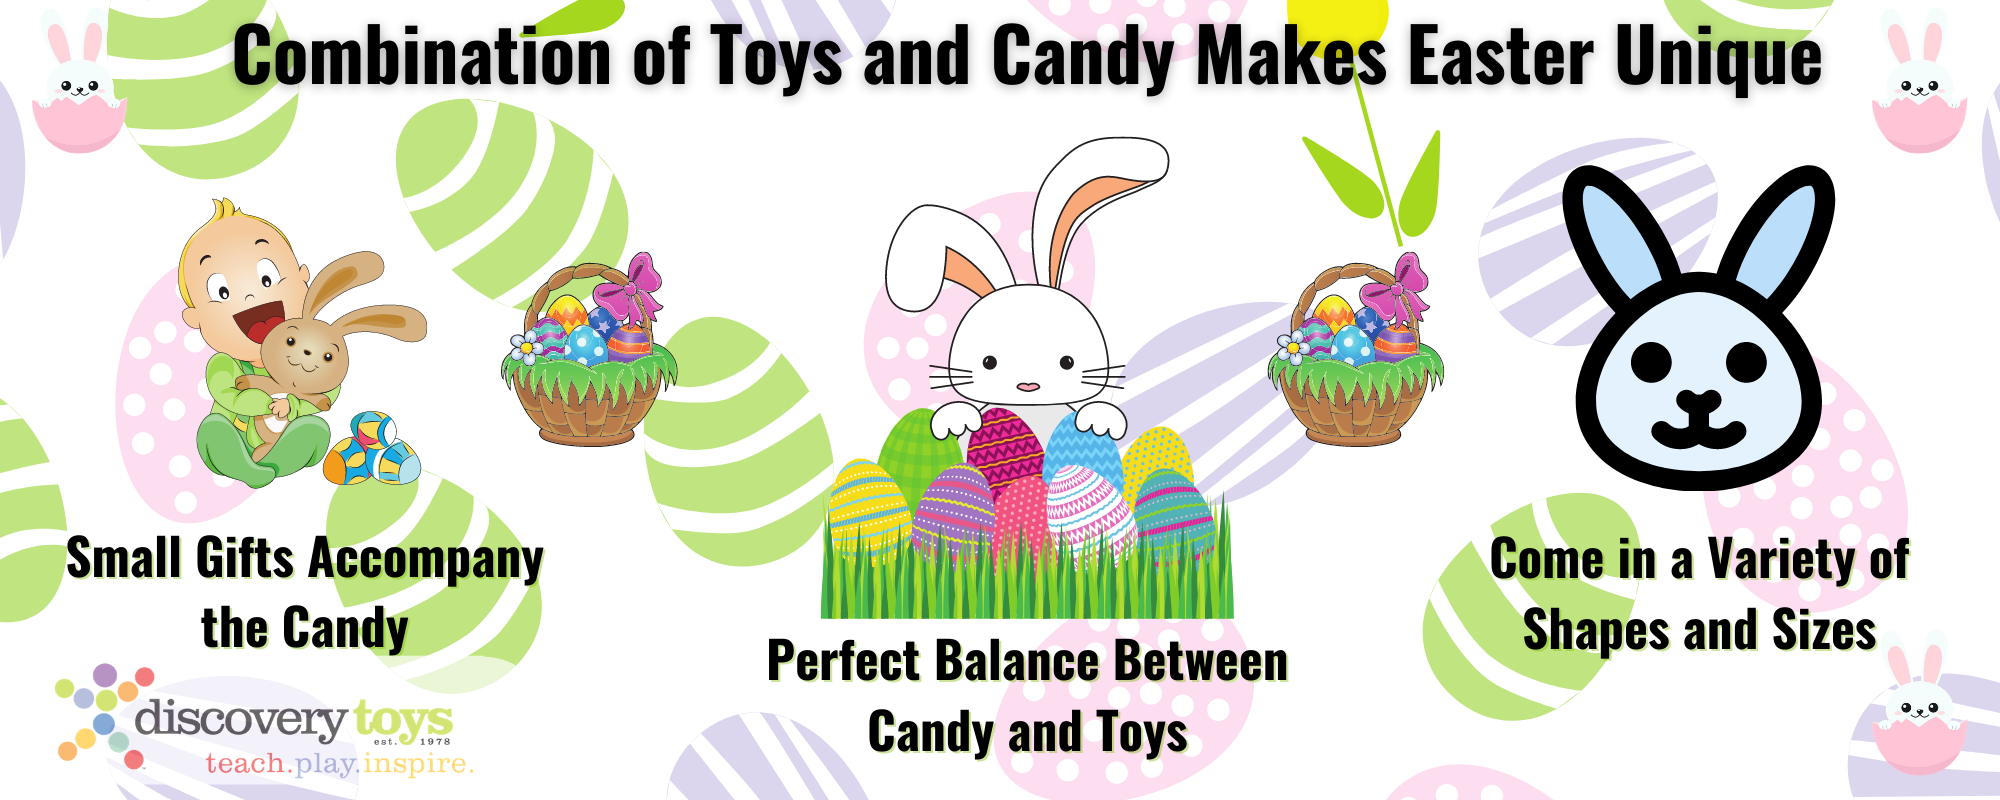 Infographic explaining how adding toys to Easter makes it special for children.